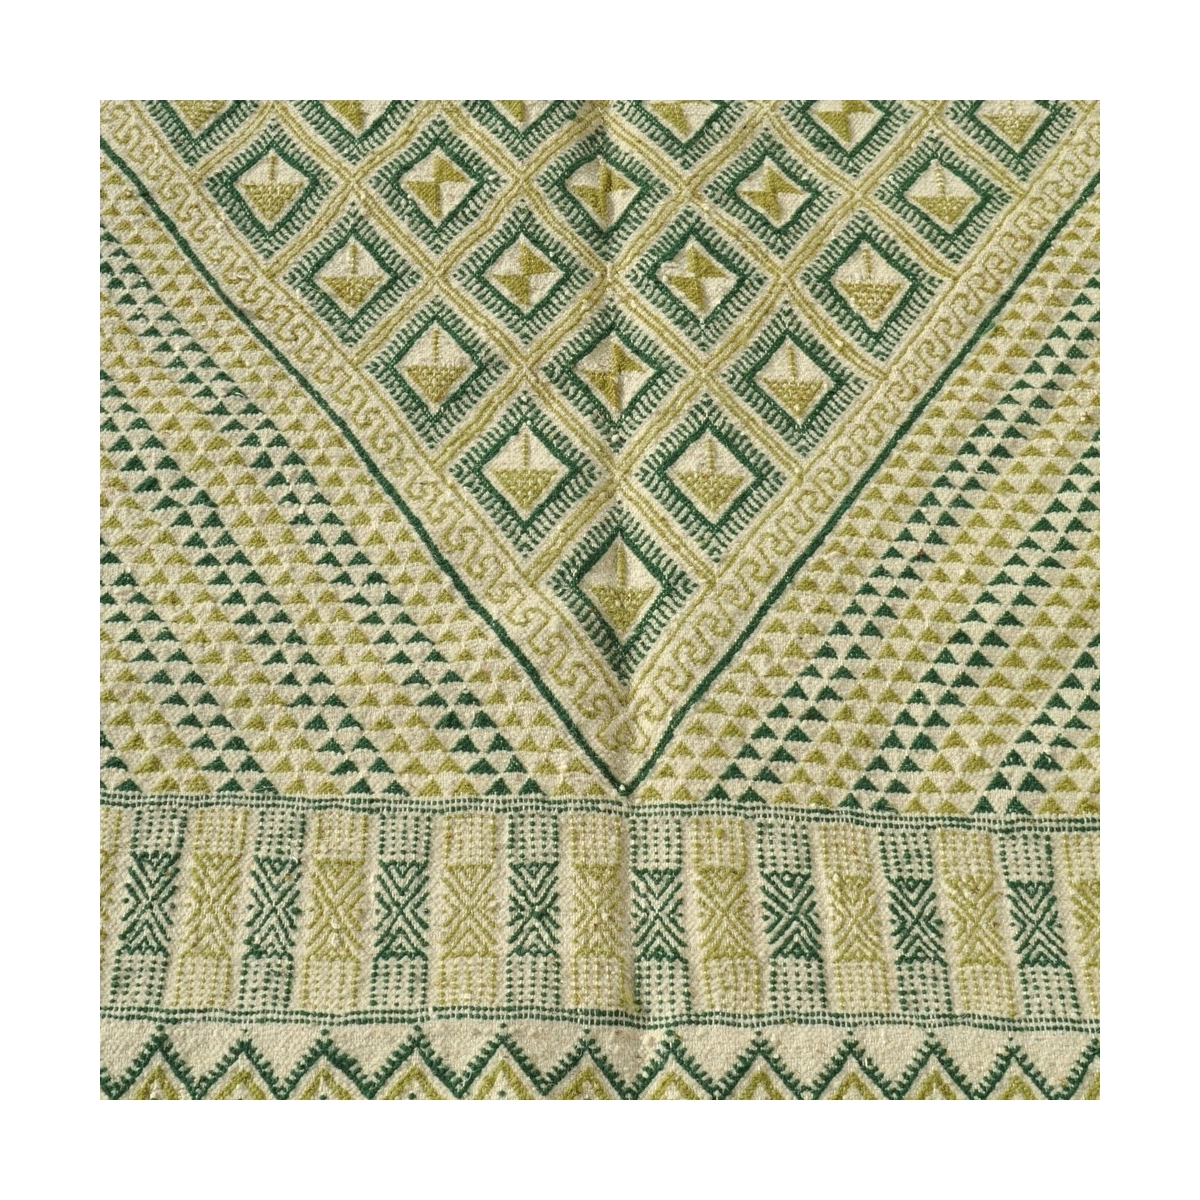 Berber carpet Large Rug Margoum Nebtaa 160x245 White/Green (Handmade, Wool, Tunisia) Tunisian margoum rug from the city of Kairo